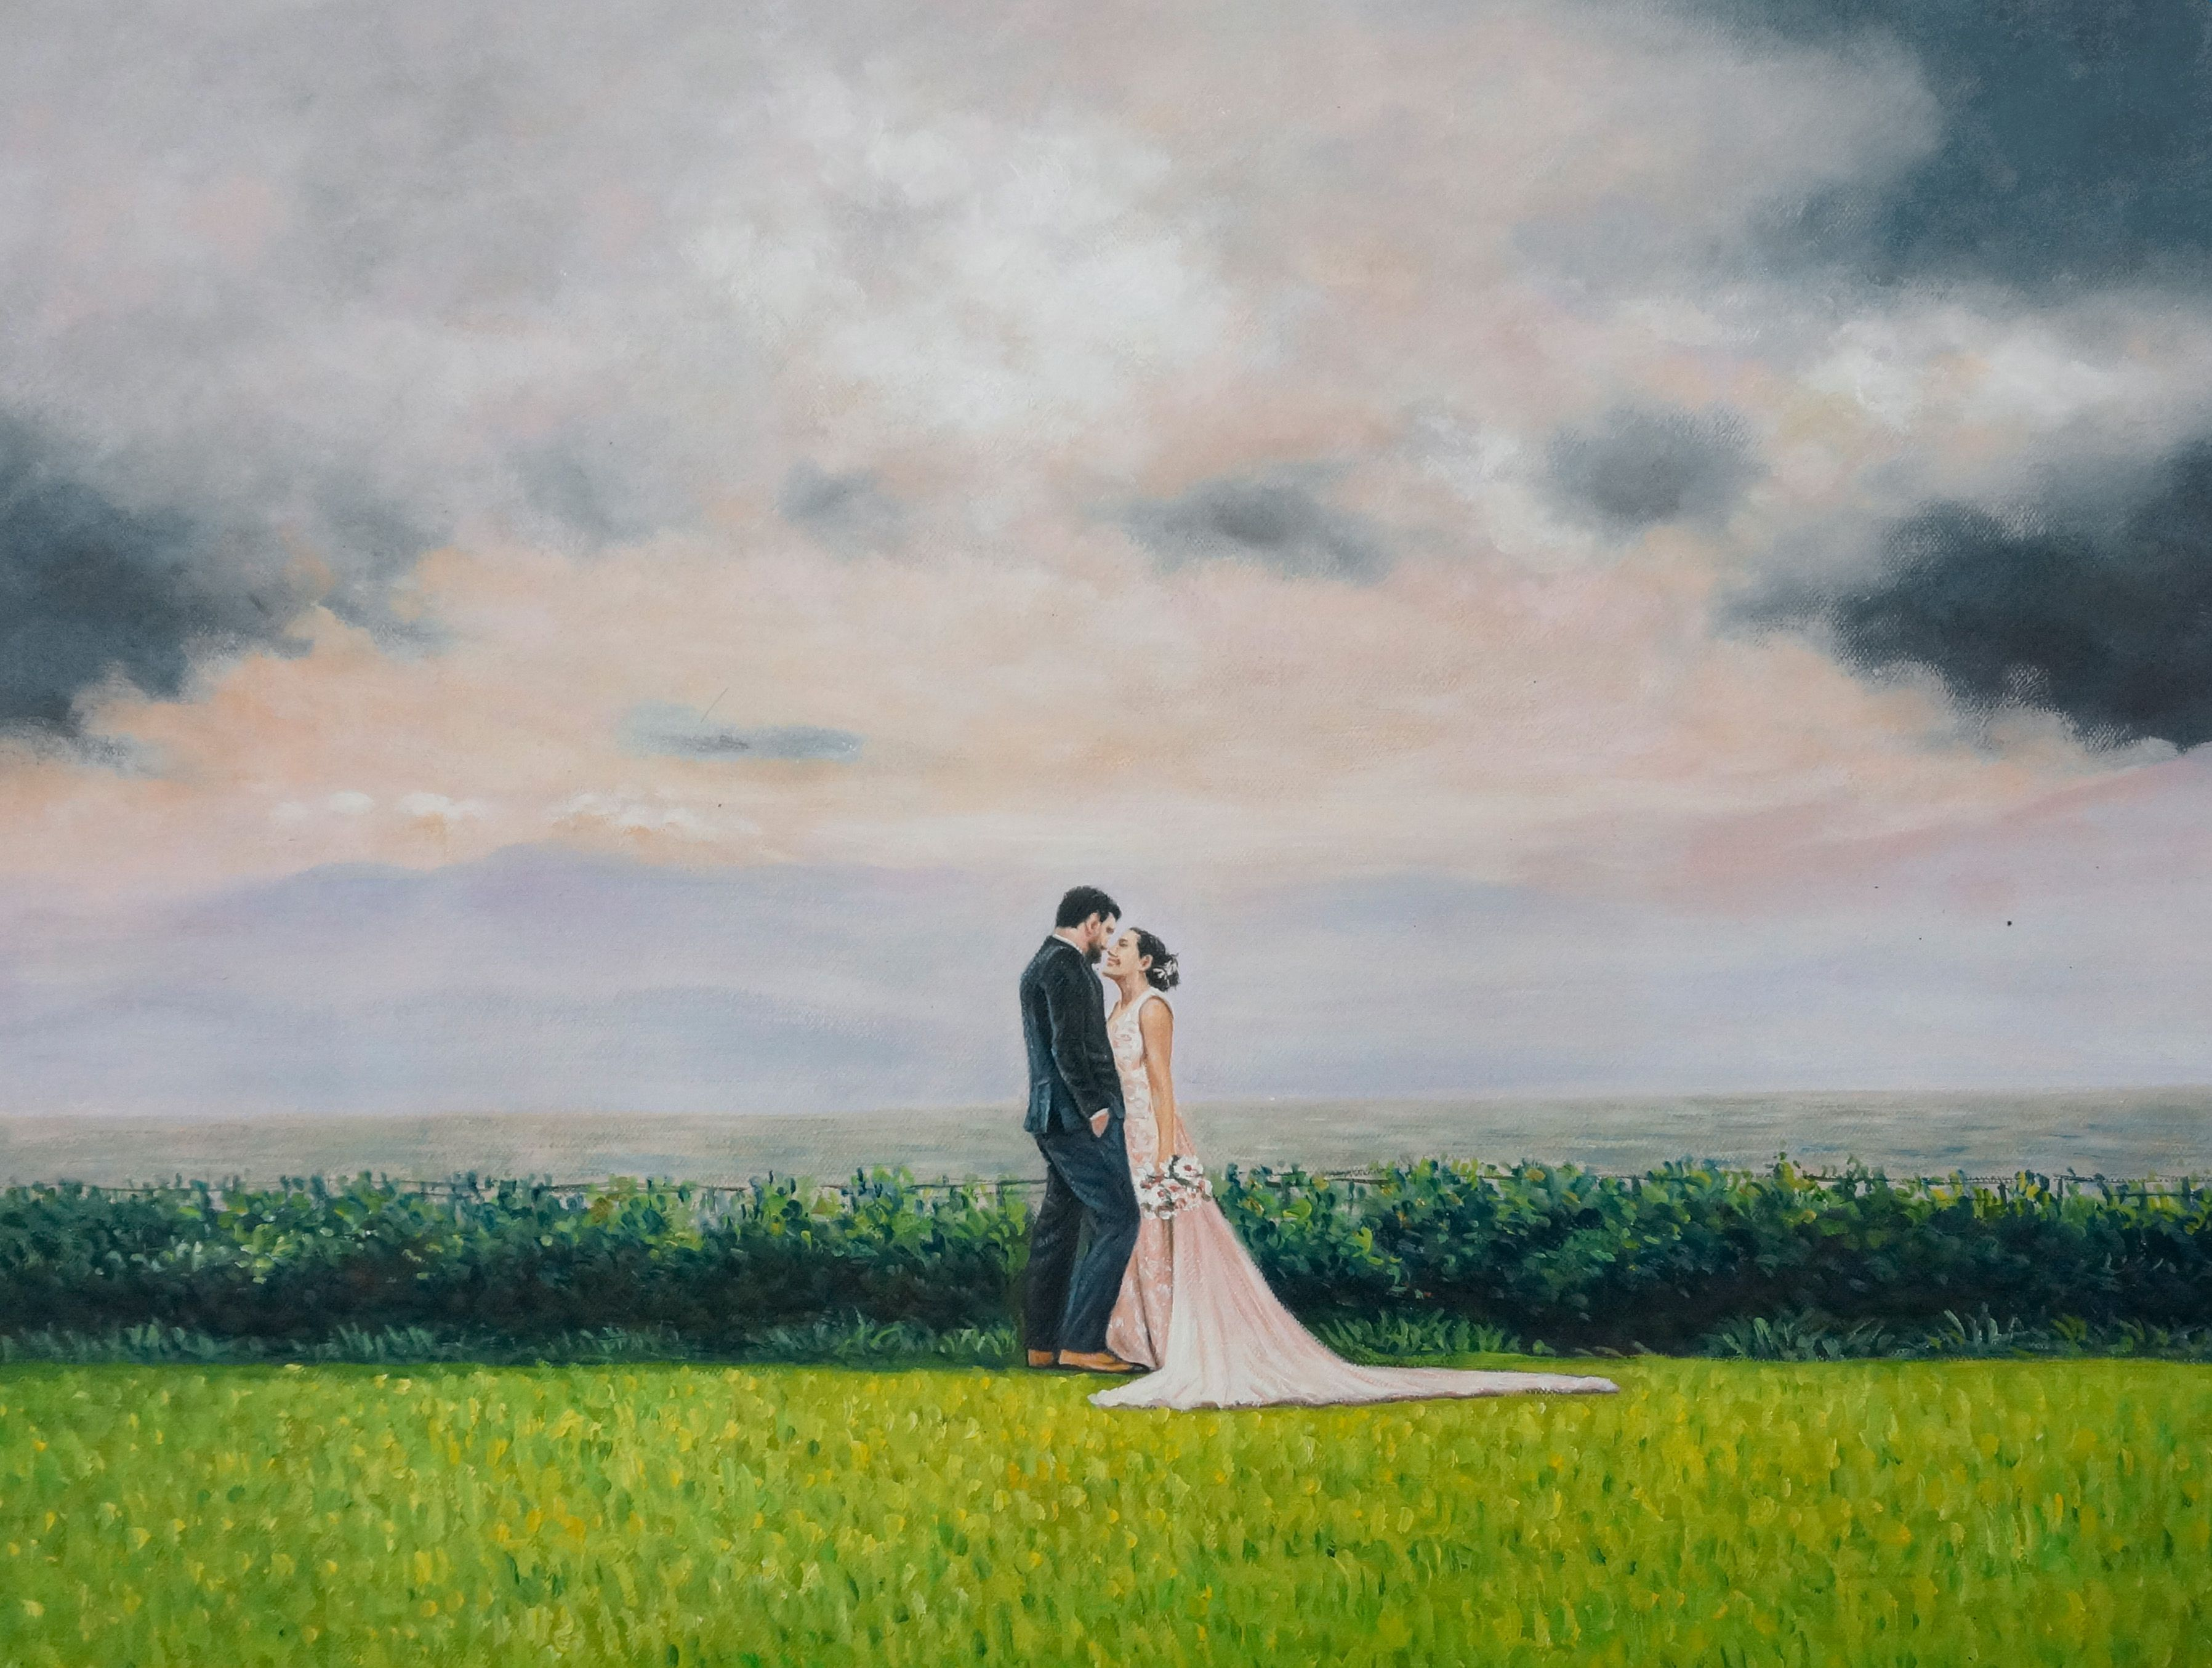 A Touching Wedding Gift For Niky And Jose Enjoy This Impressionism Painting Give Your Spouse Squeeze